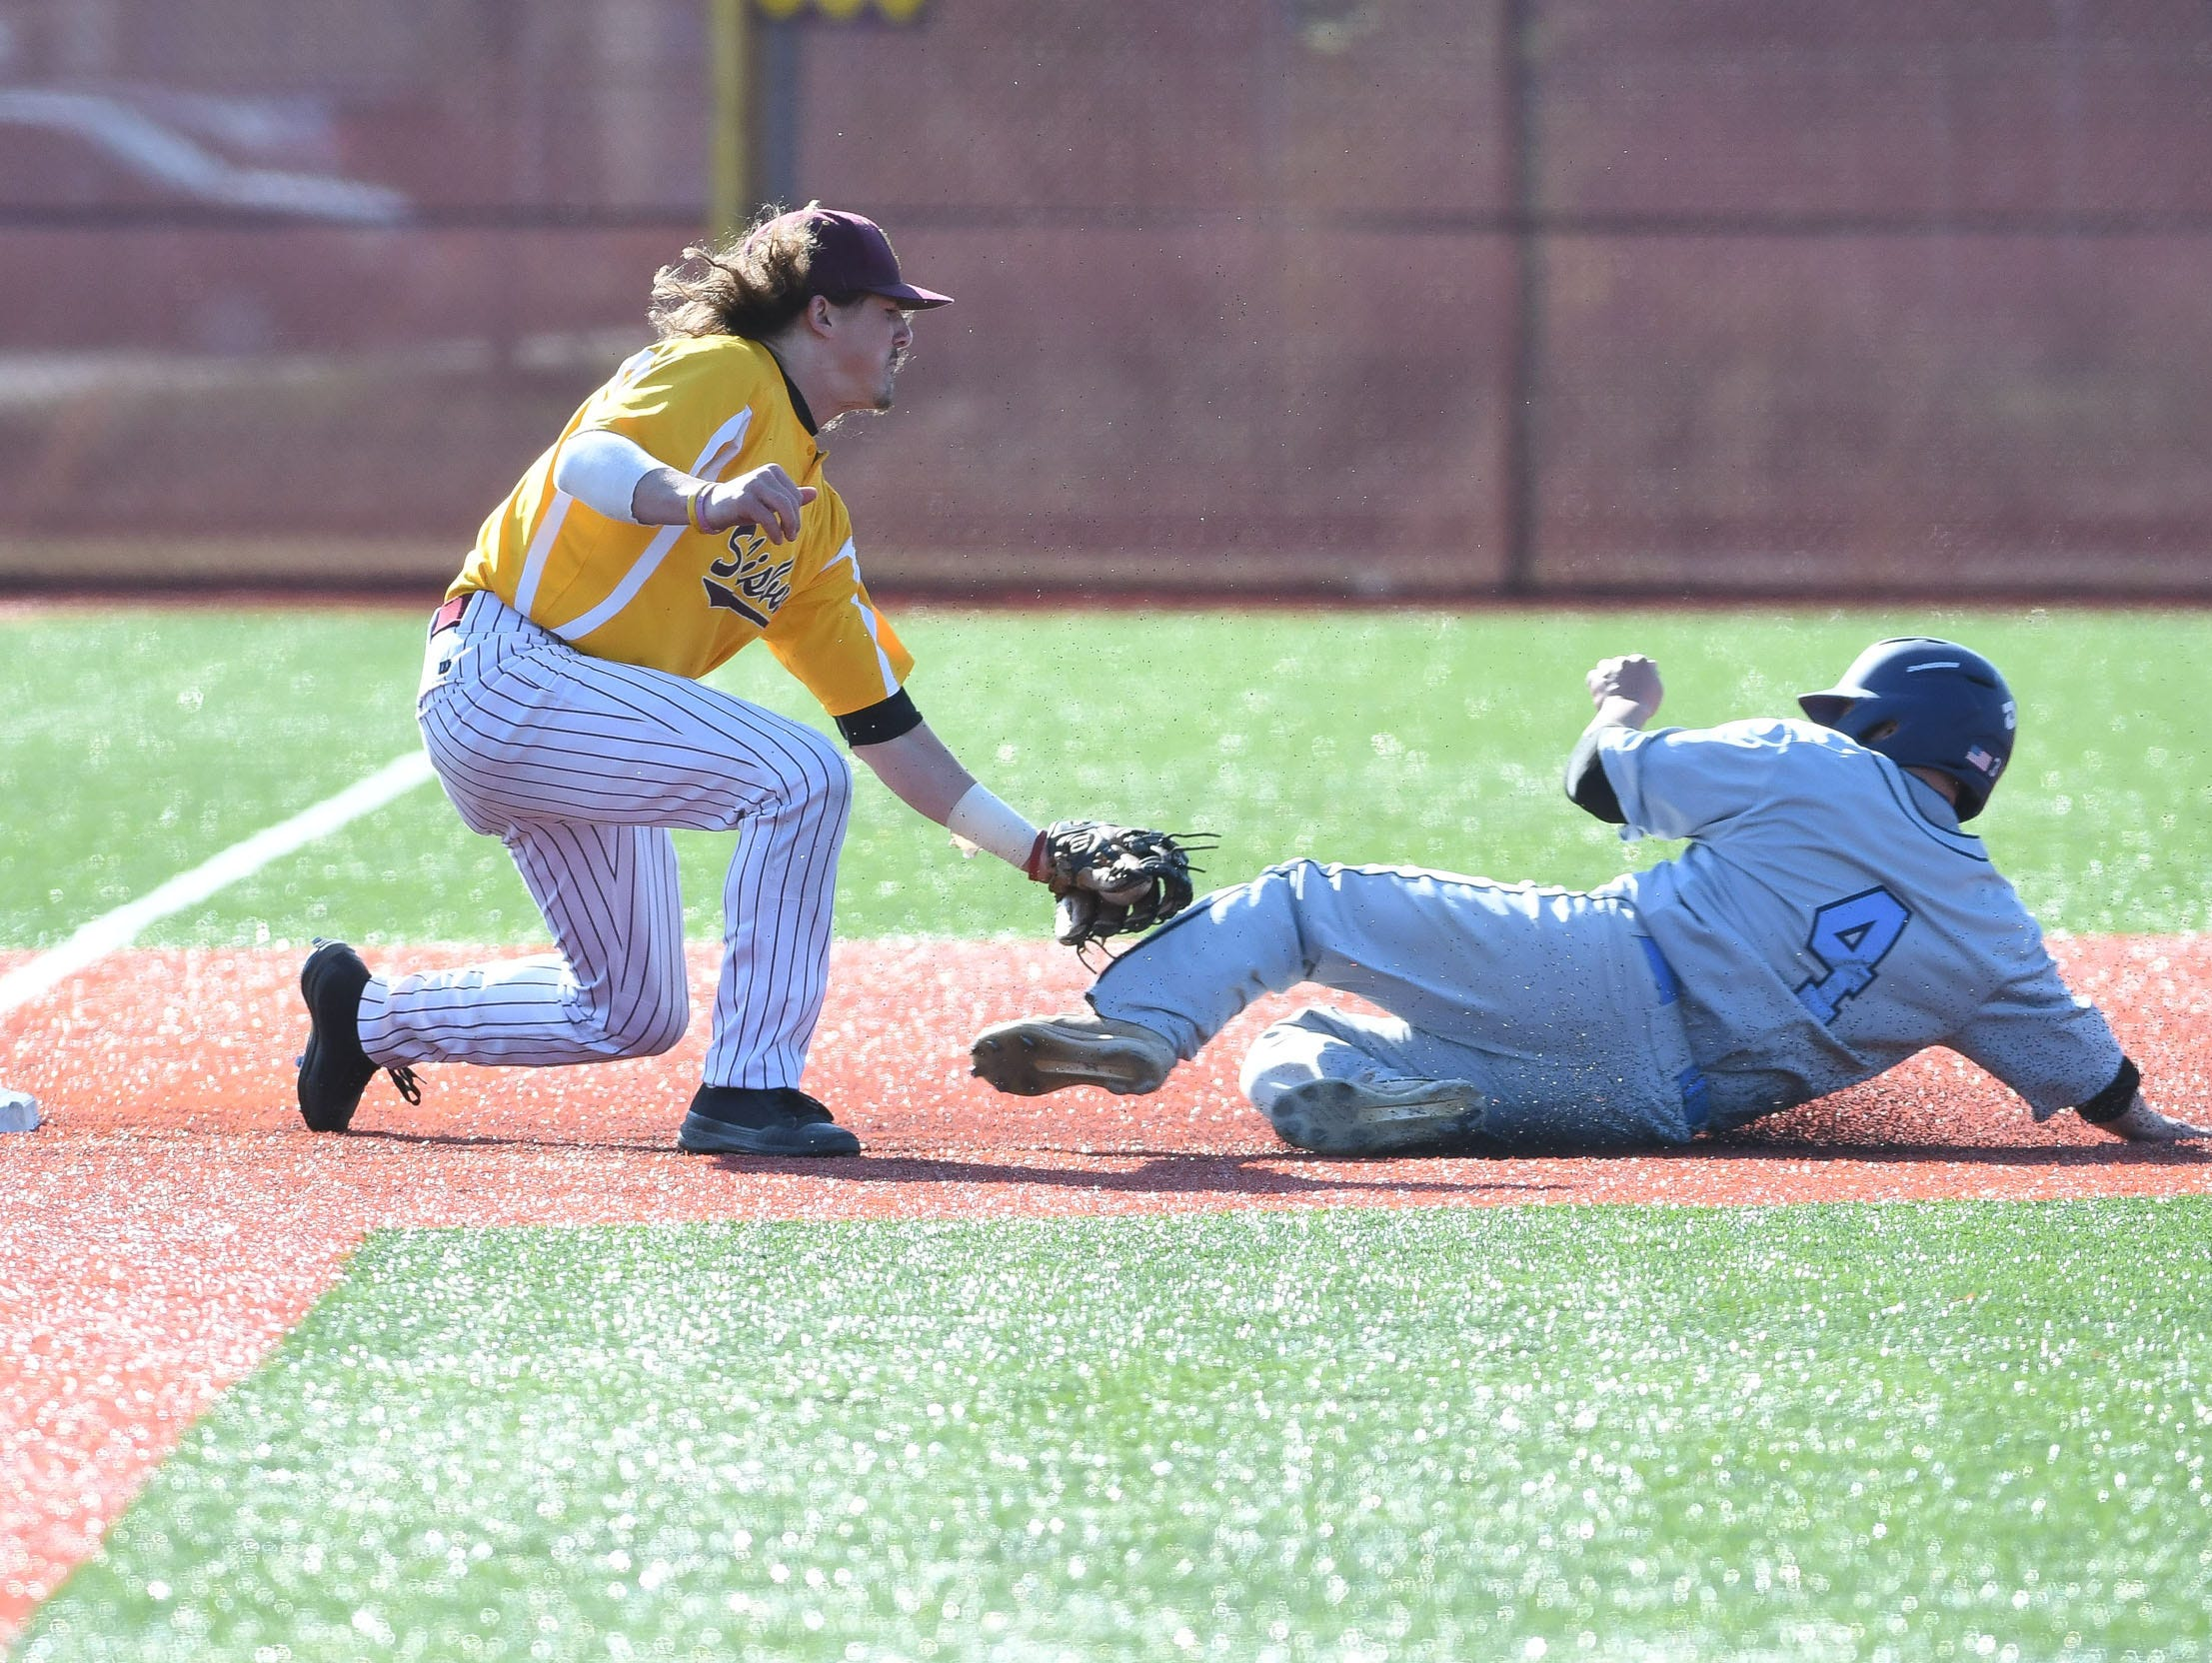 Salisbury University's Jimmy Adkins with the tag at third for the out against Wesley on Wednesday, April 3, 2019.